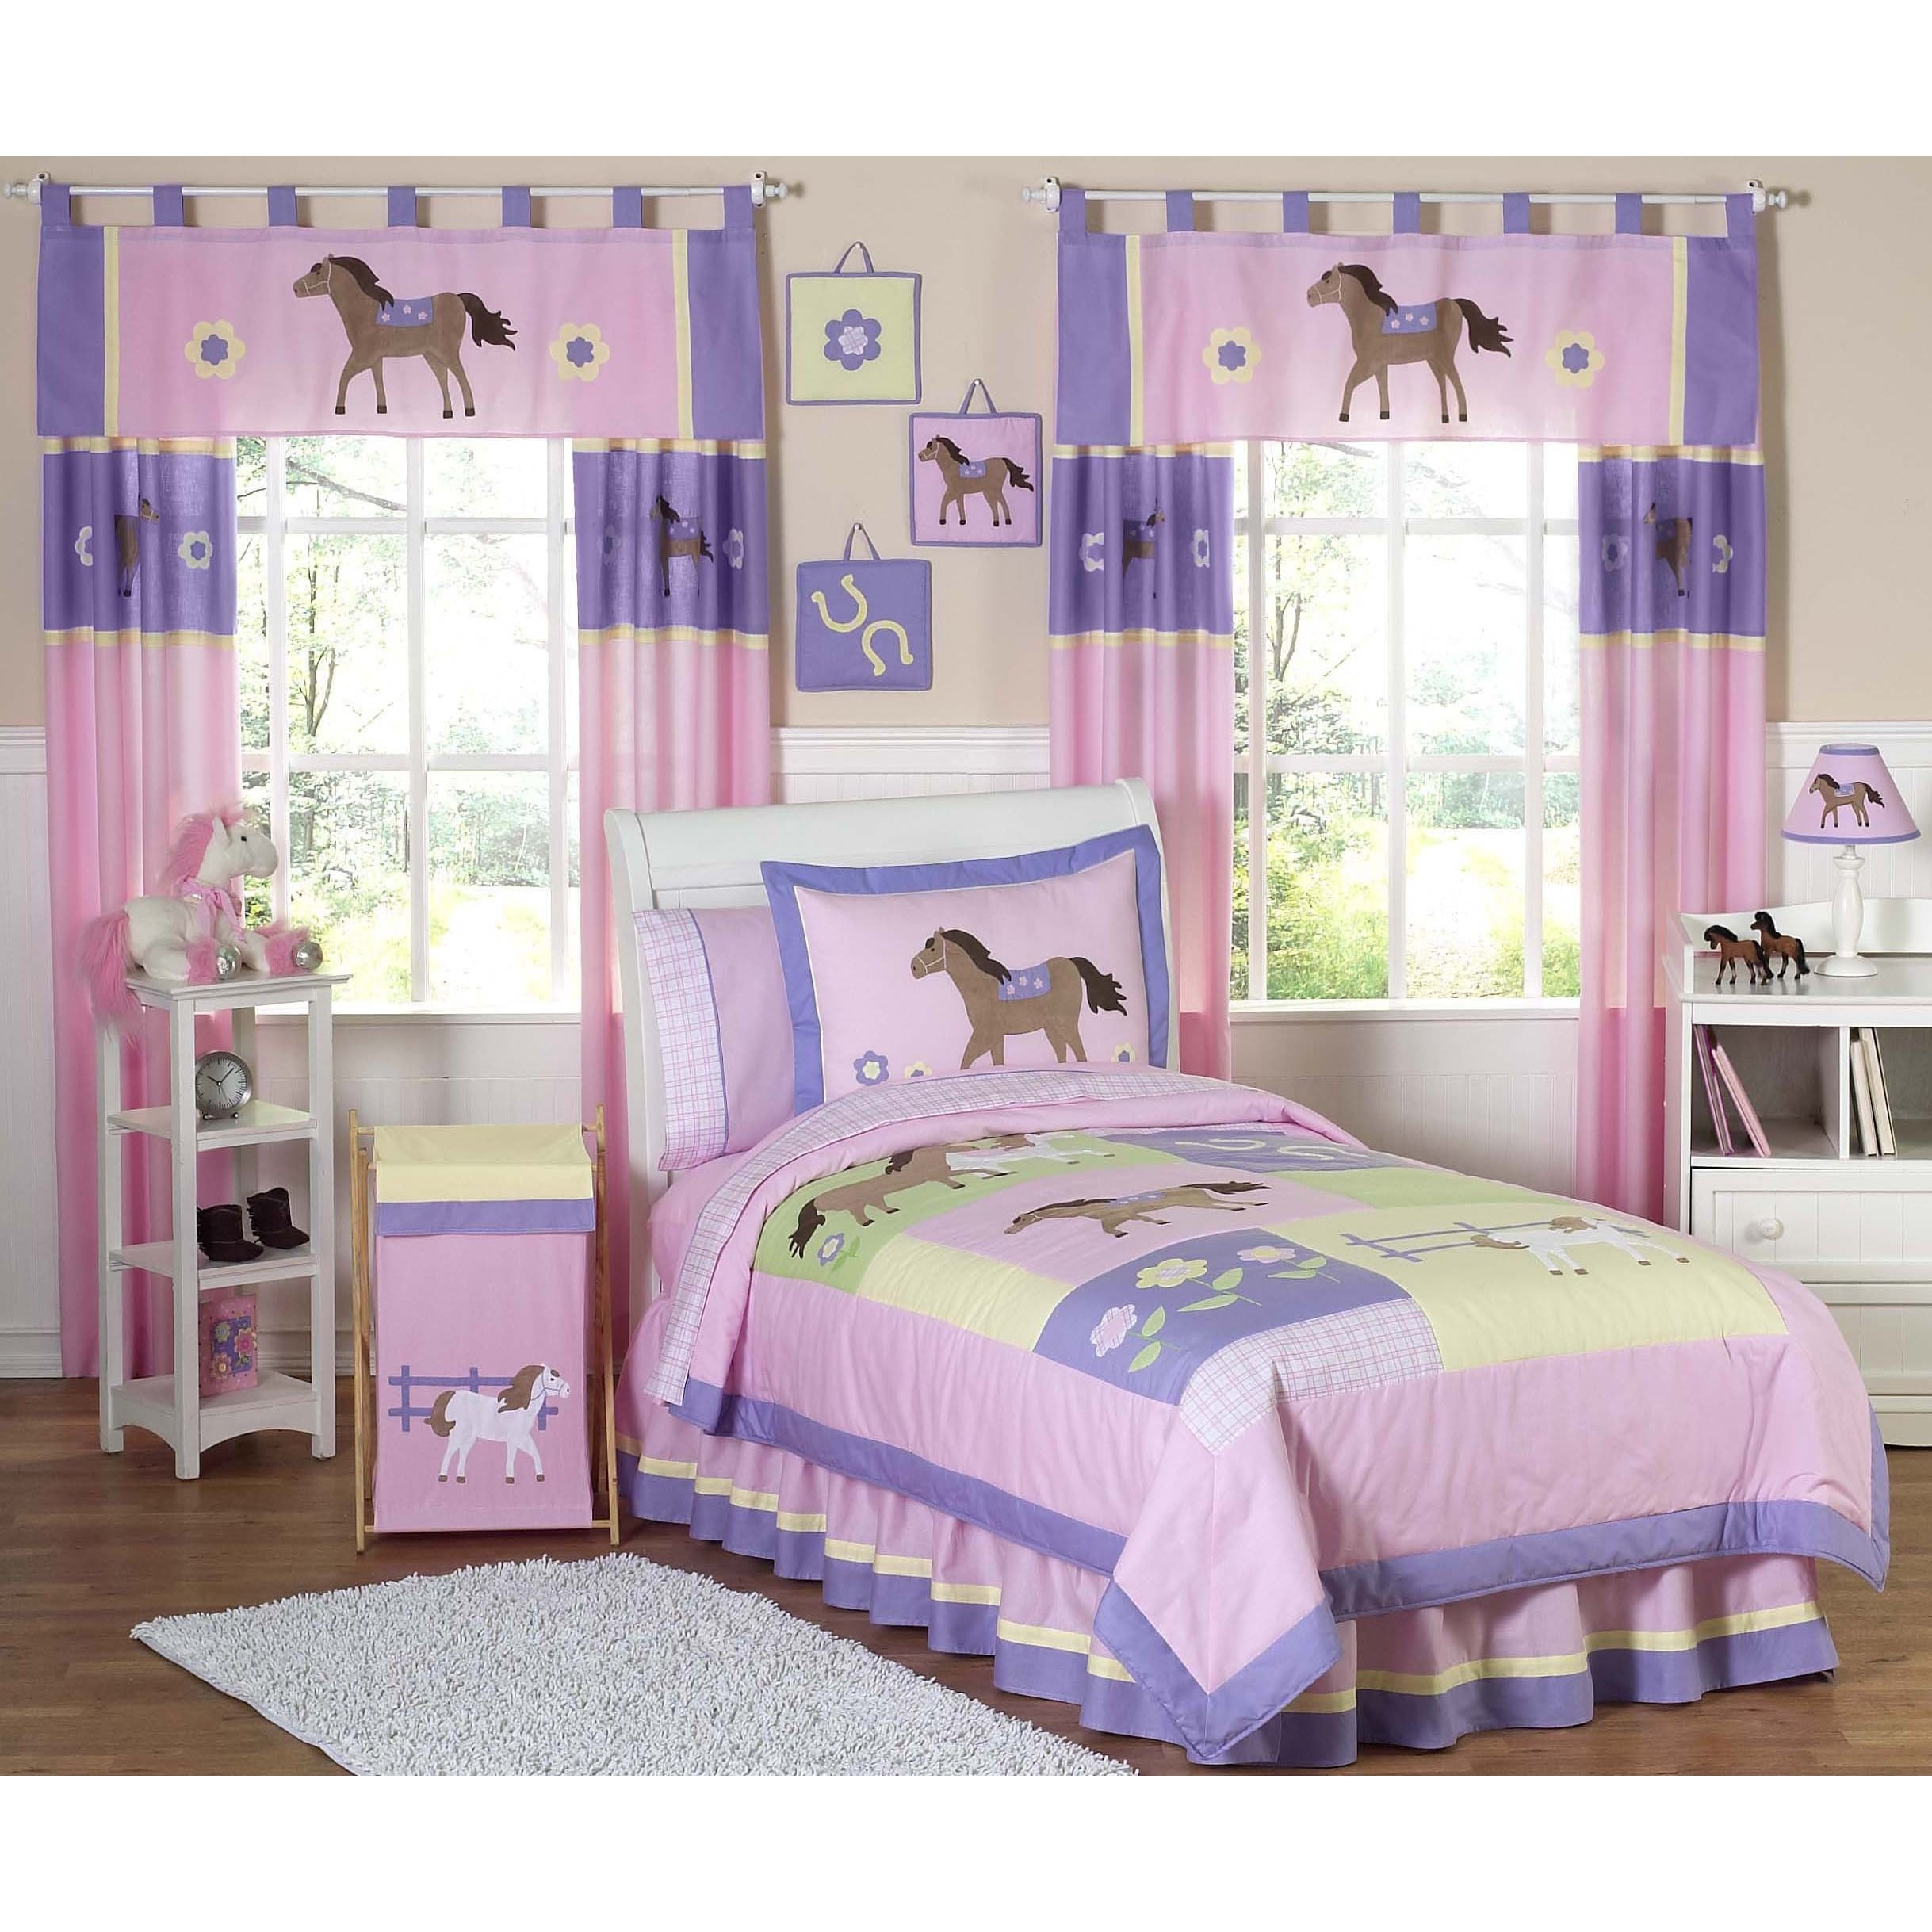 bedding girl kmart teal sets of size twin for set girls boy shhet kids full little kid comforter beds